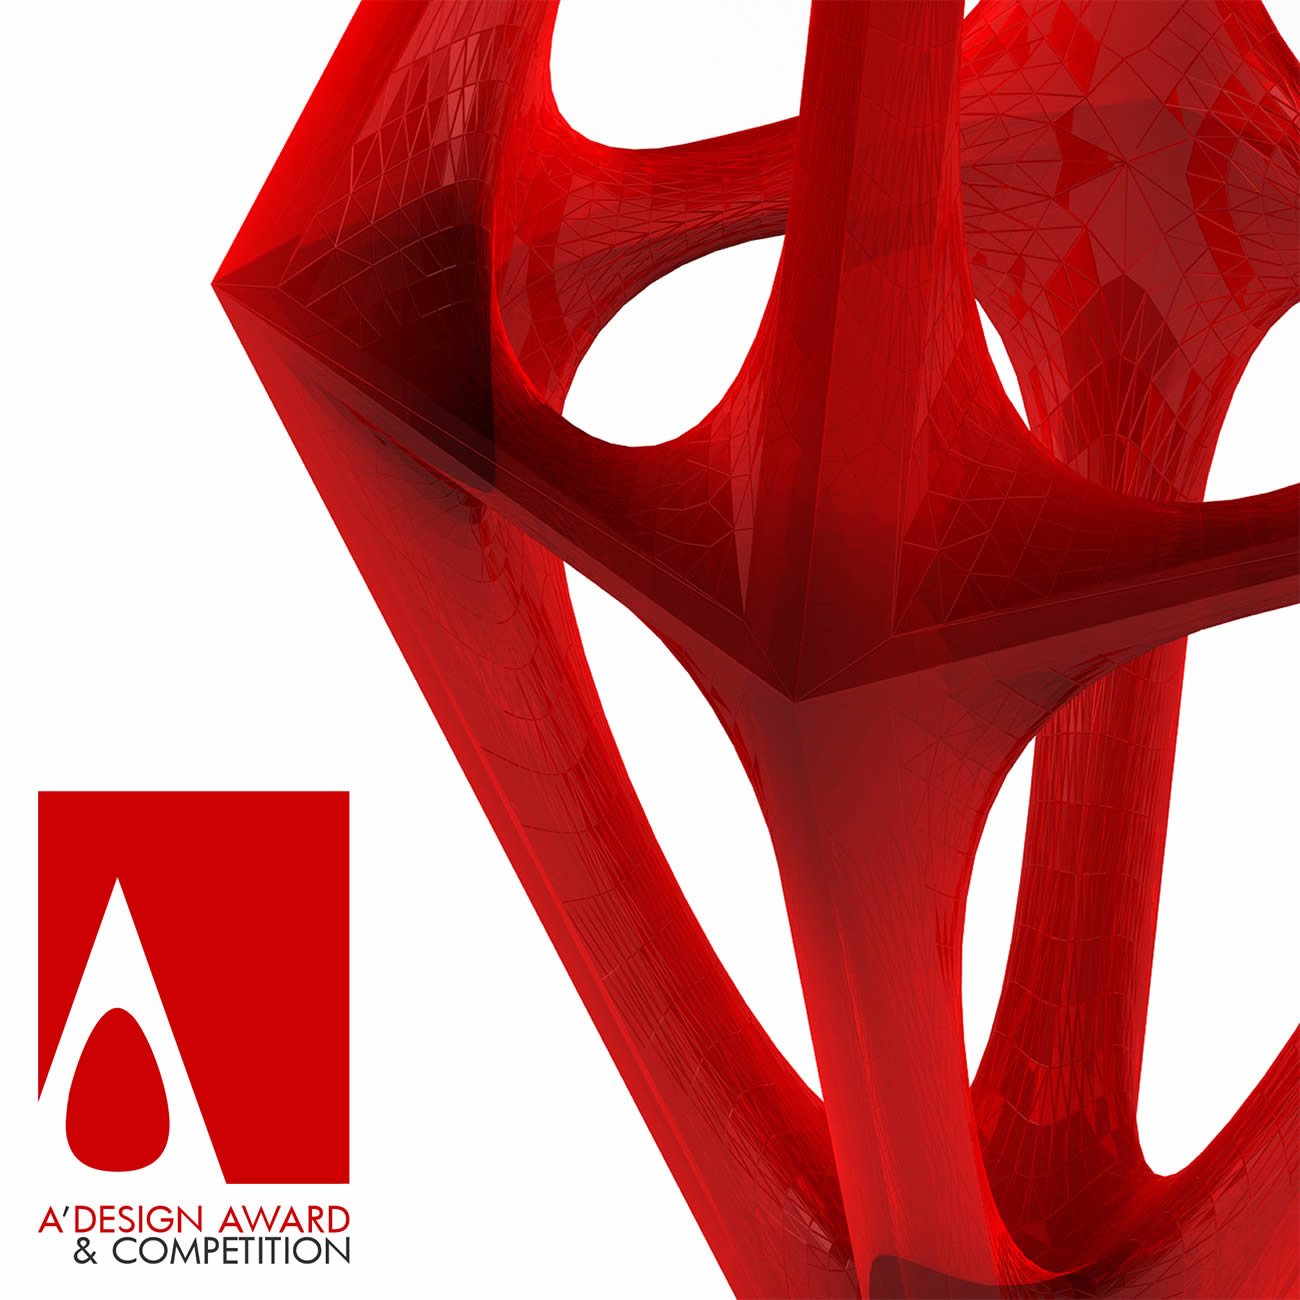 Adesign awards and competition red trophy